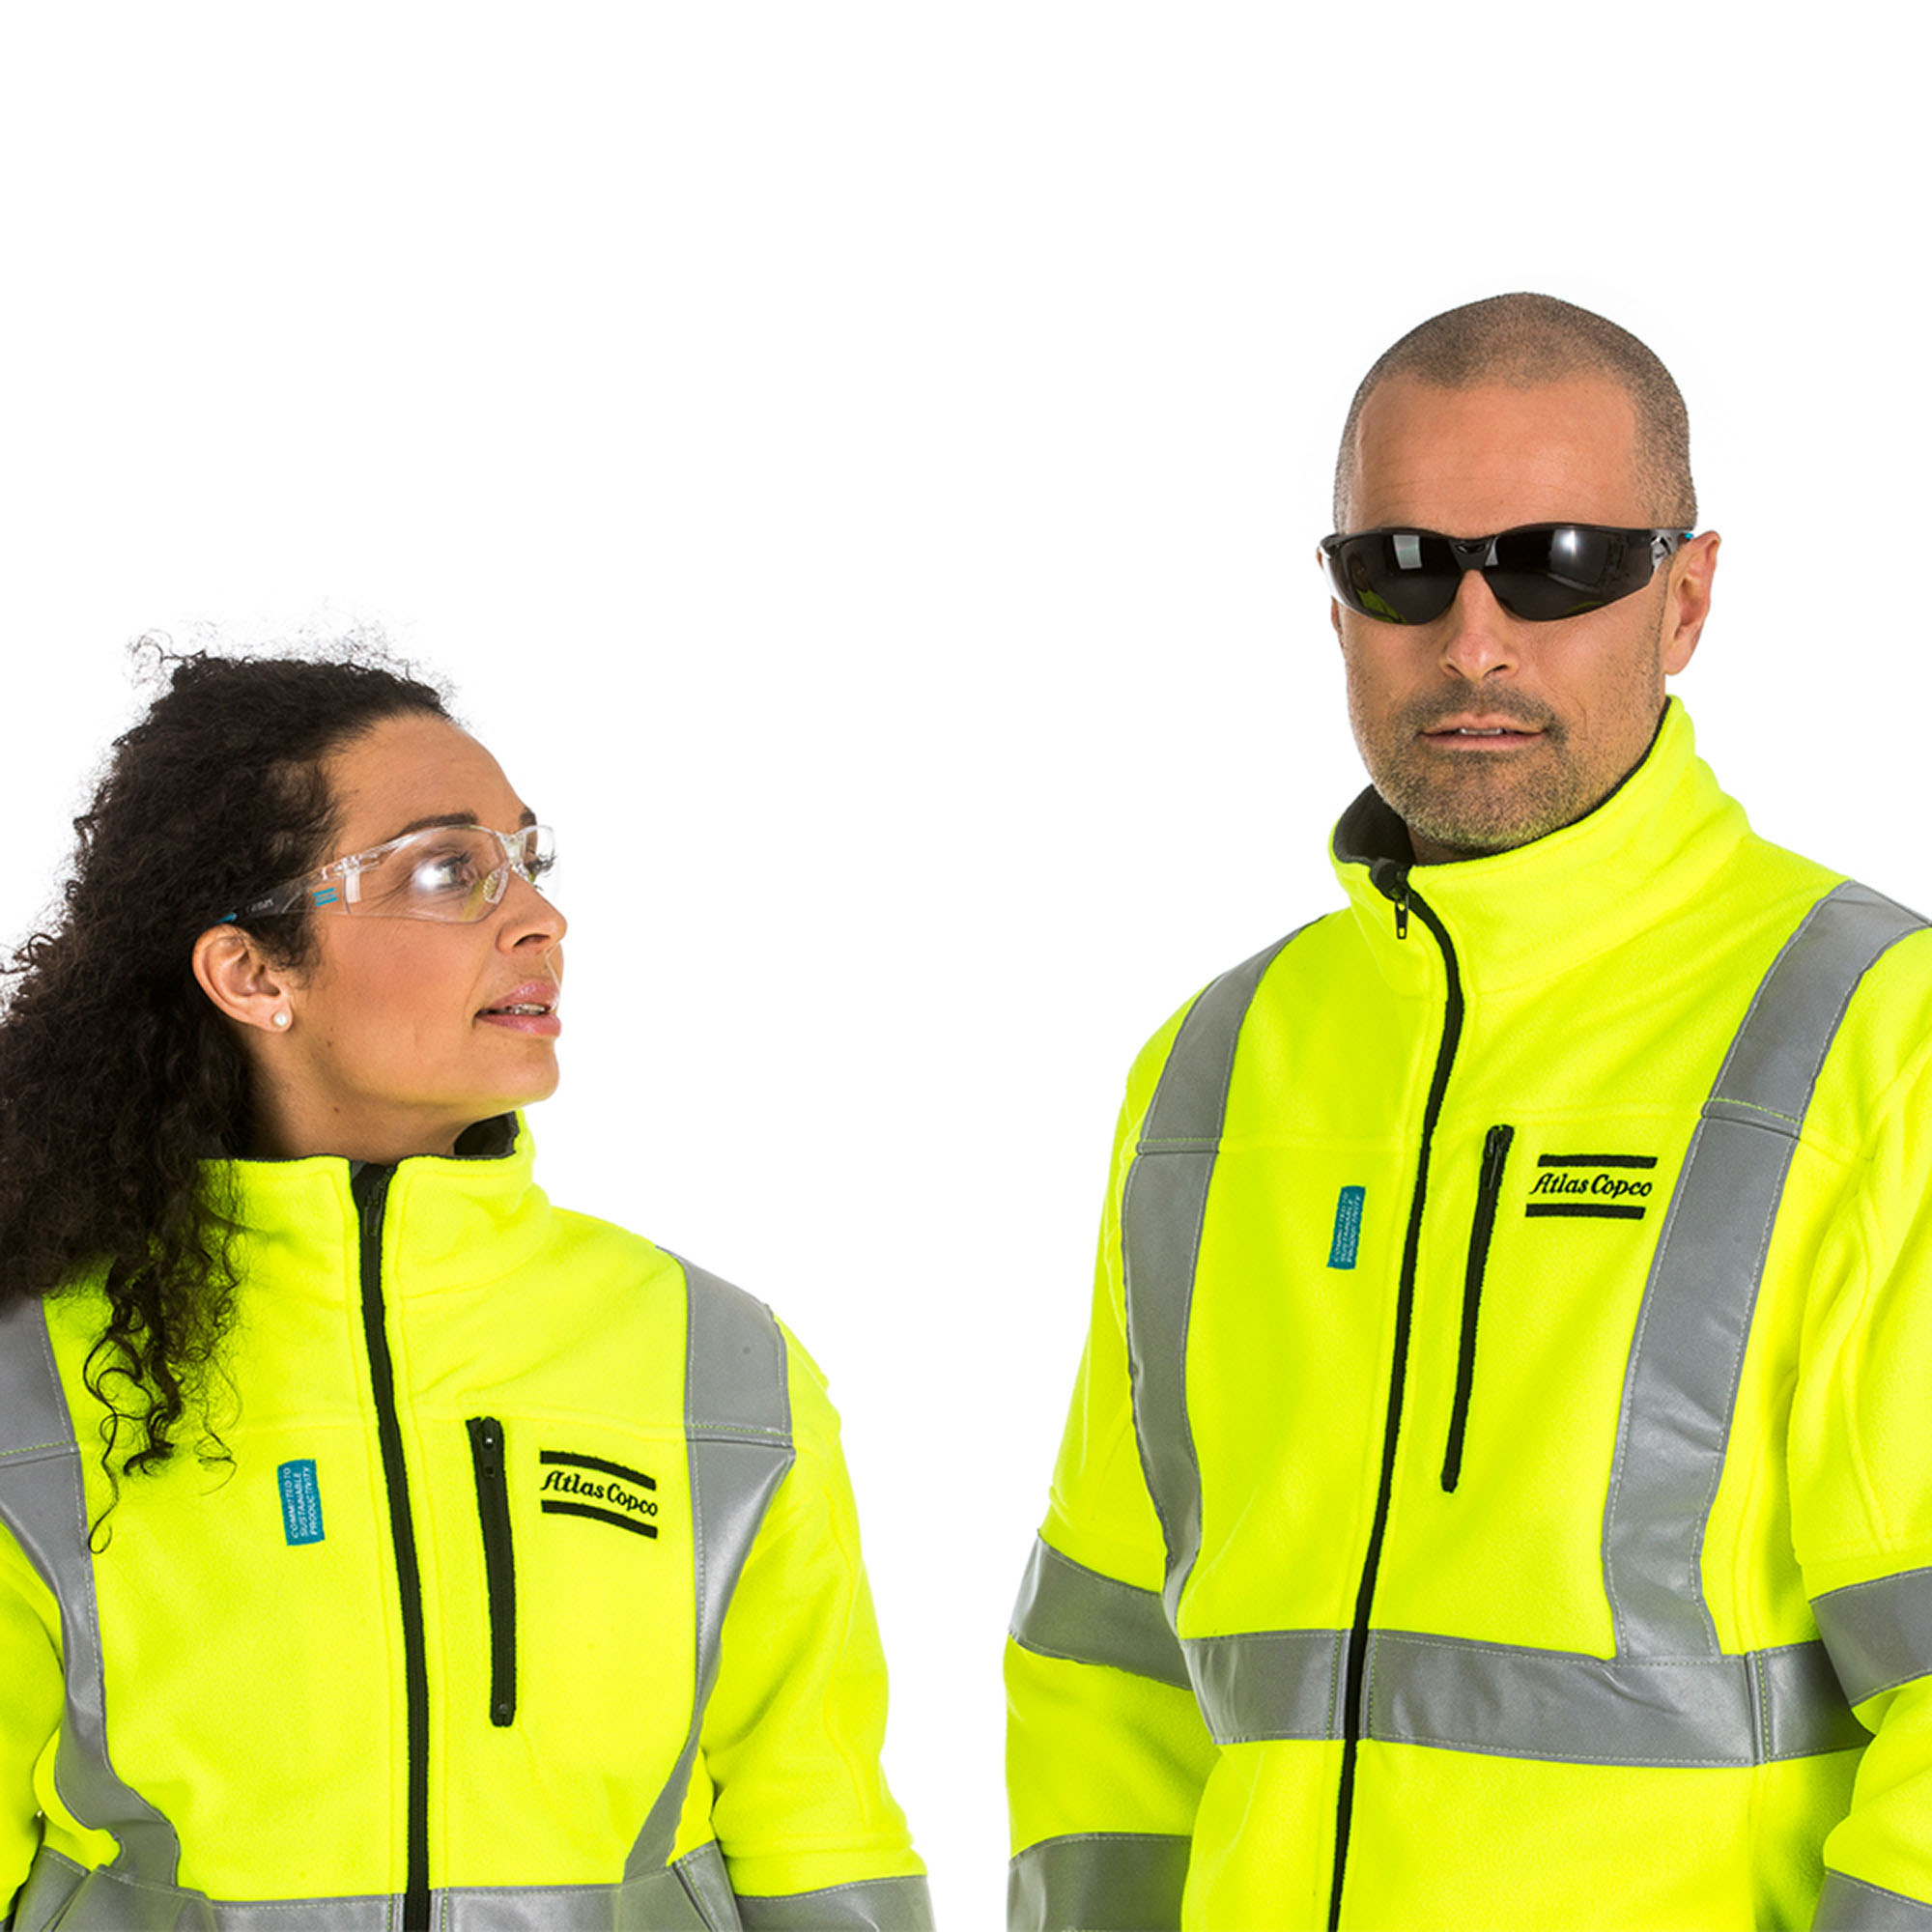 This safety eyewear is designed to offer the best possible protection and has been checked aesthetically and for proper fit to allow Atlas Copco's operators to work in complete harmony with the eyewear. The eyewear is made from non-allergic rubber, with a non-slip rubber nose pad and eyebrow protection. This safety eyewear meets the requirements of: EN 166 EN166 EN 170 EN166 ANSI Z87.1 EN166